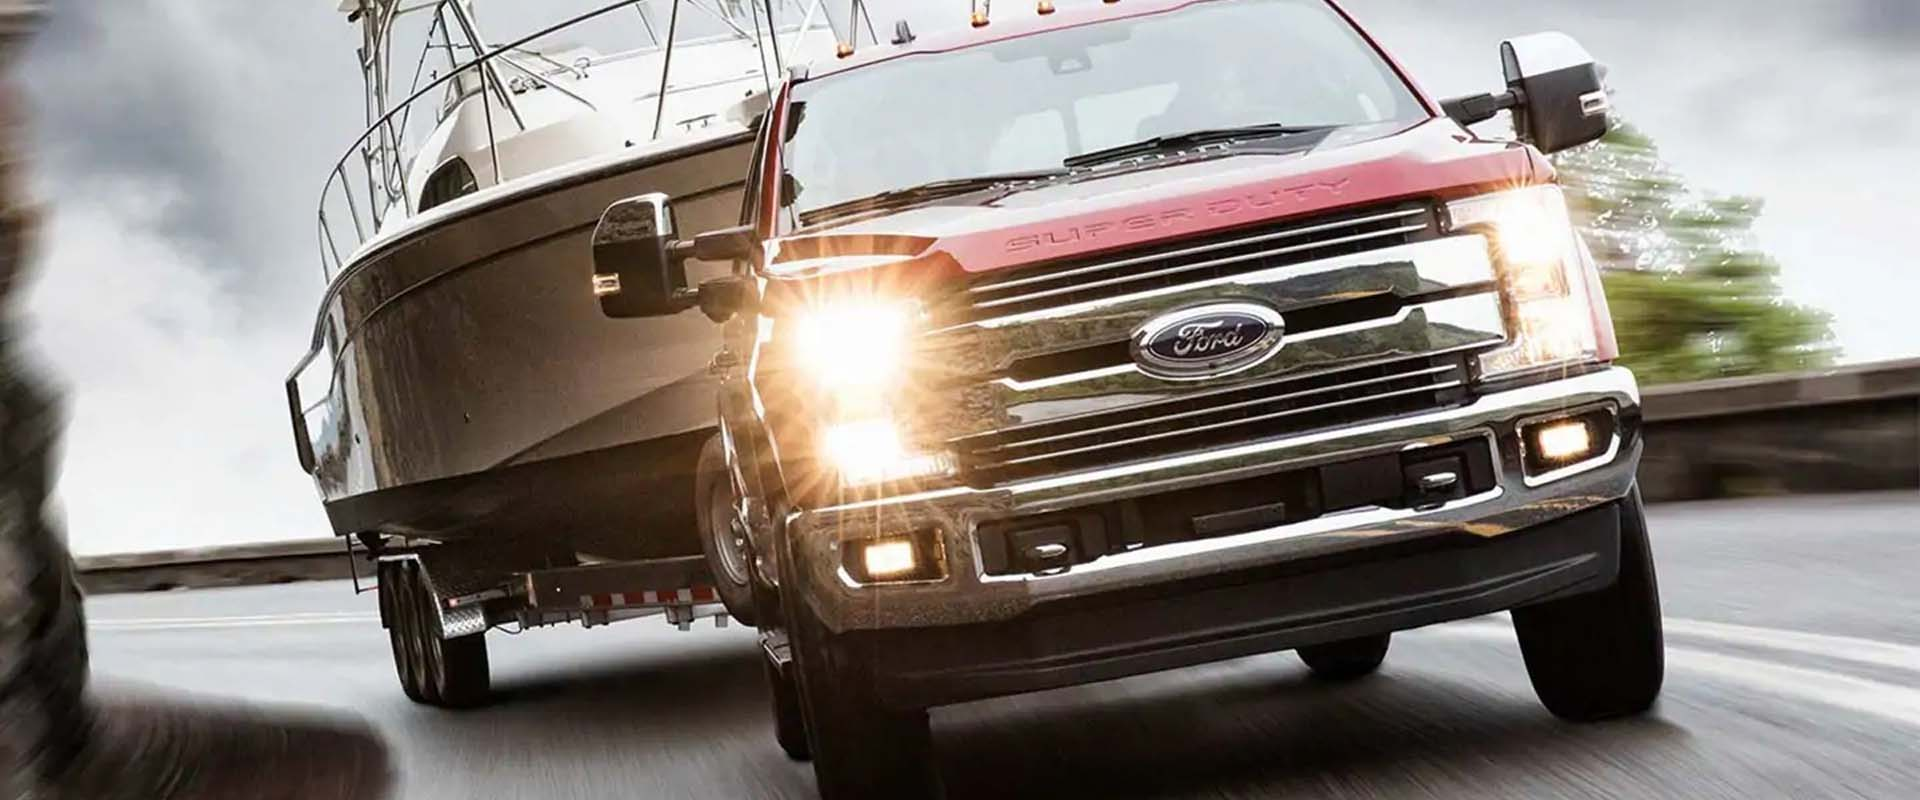 2019 Ford Super Duty F-450 for sale